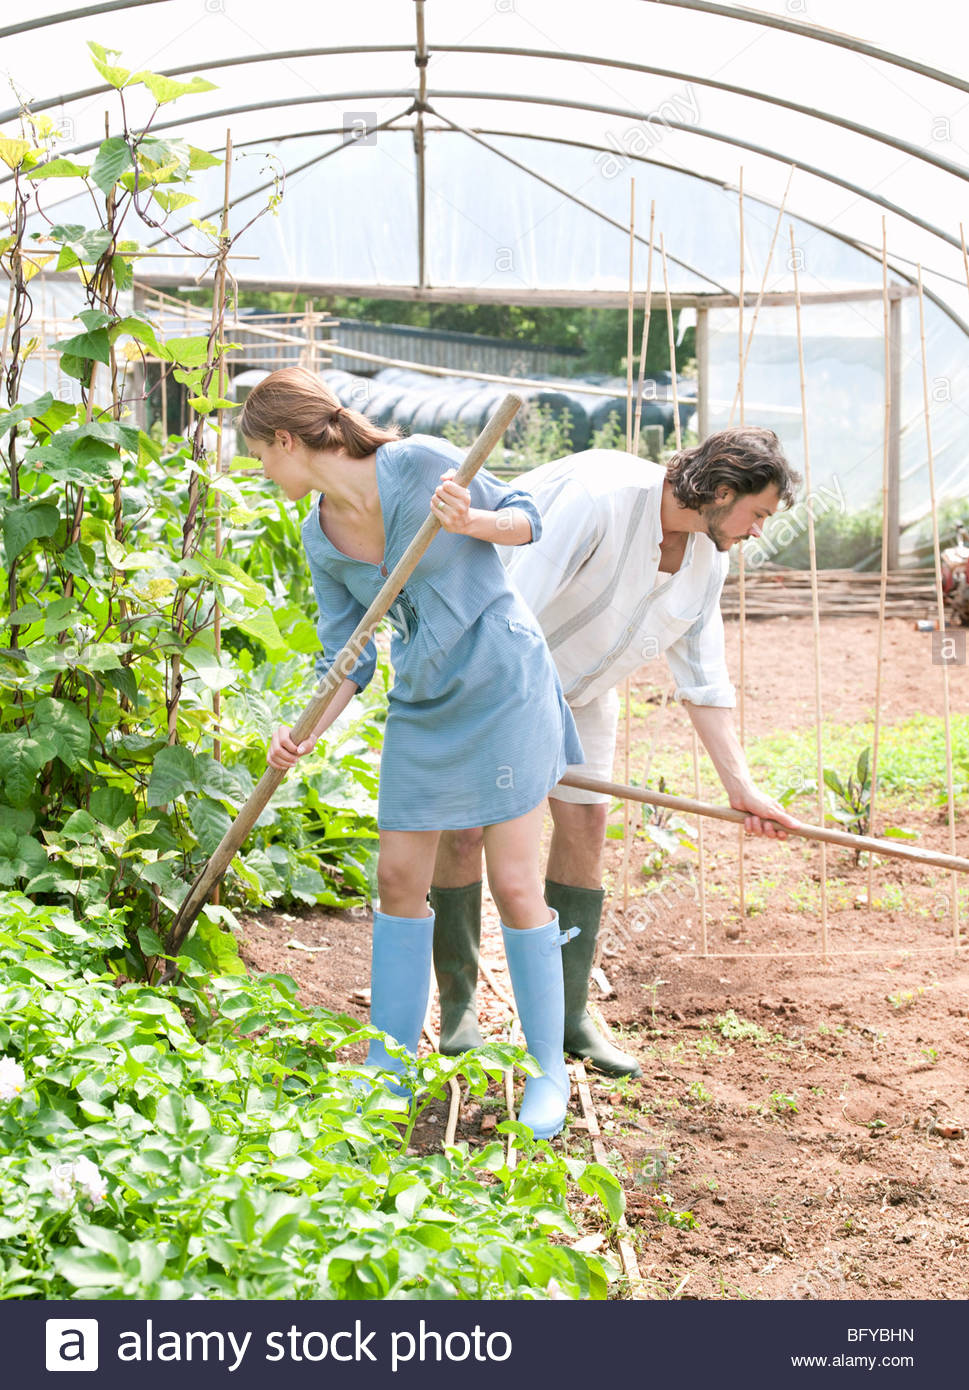 Man and woman gardening in greenhouse - Stock Image